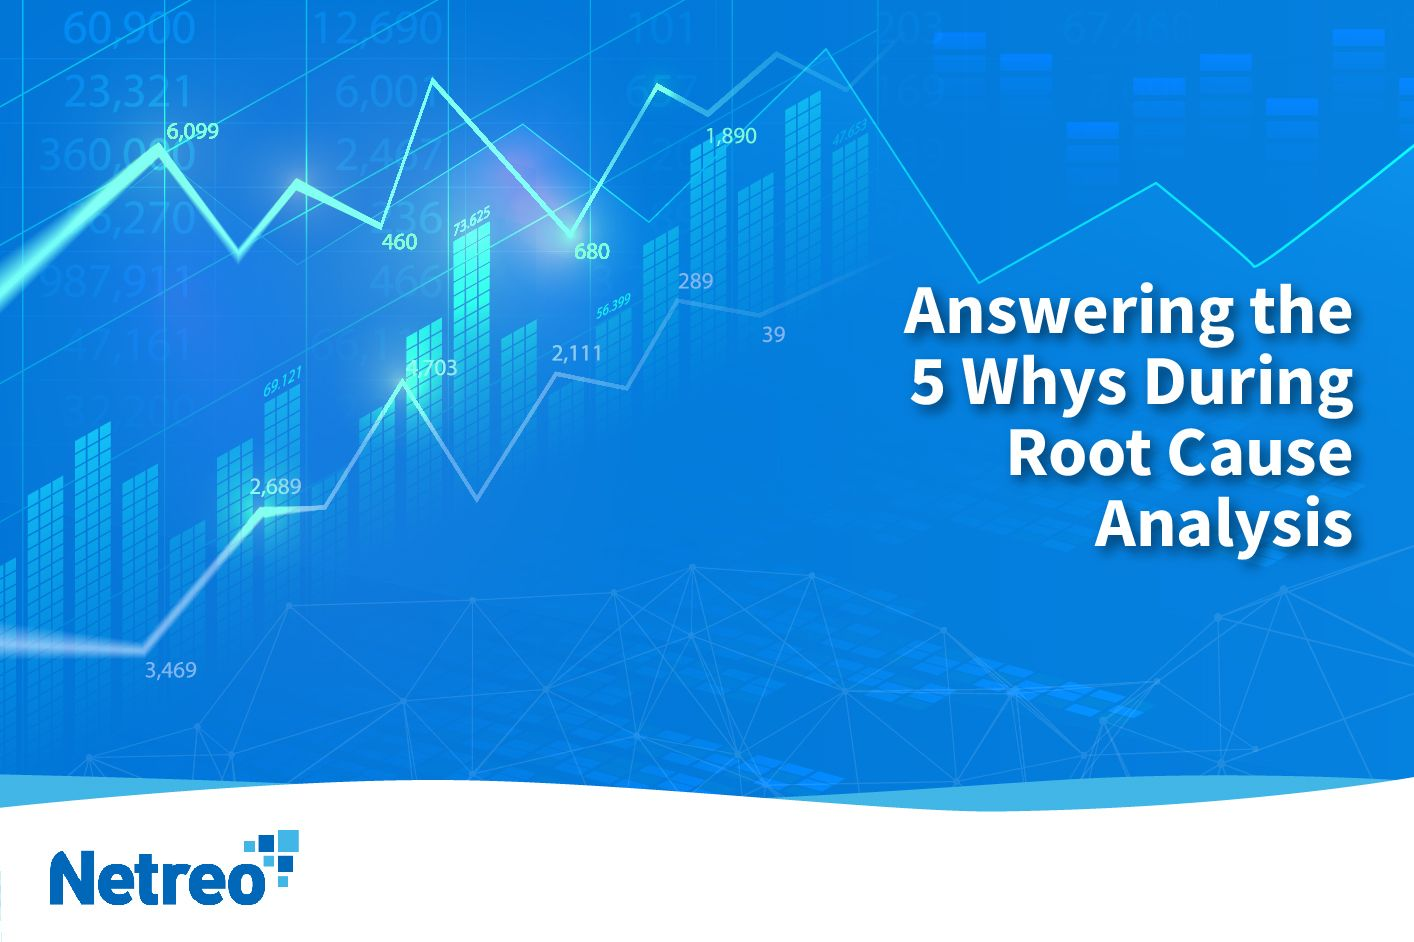 Answering the 5 Whys During Root Cause Analysis - Root Cause Analysis Process - Netreo IT Infrastructure Management